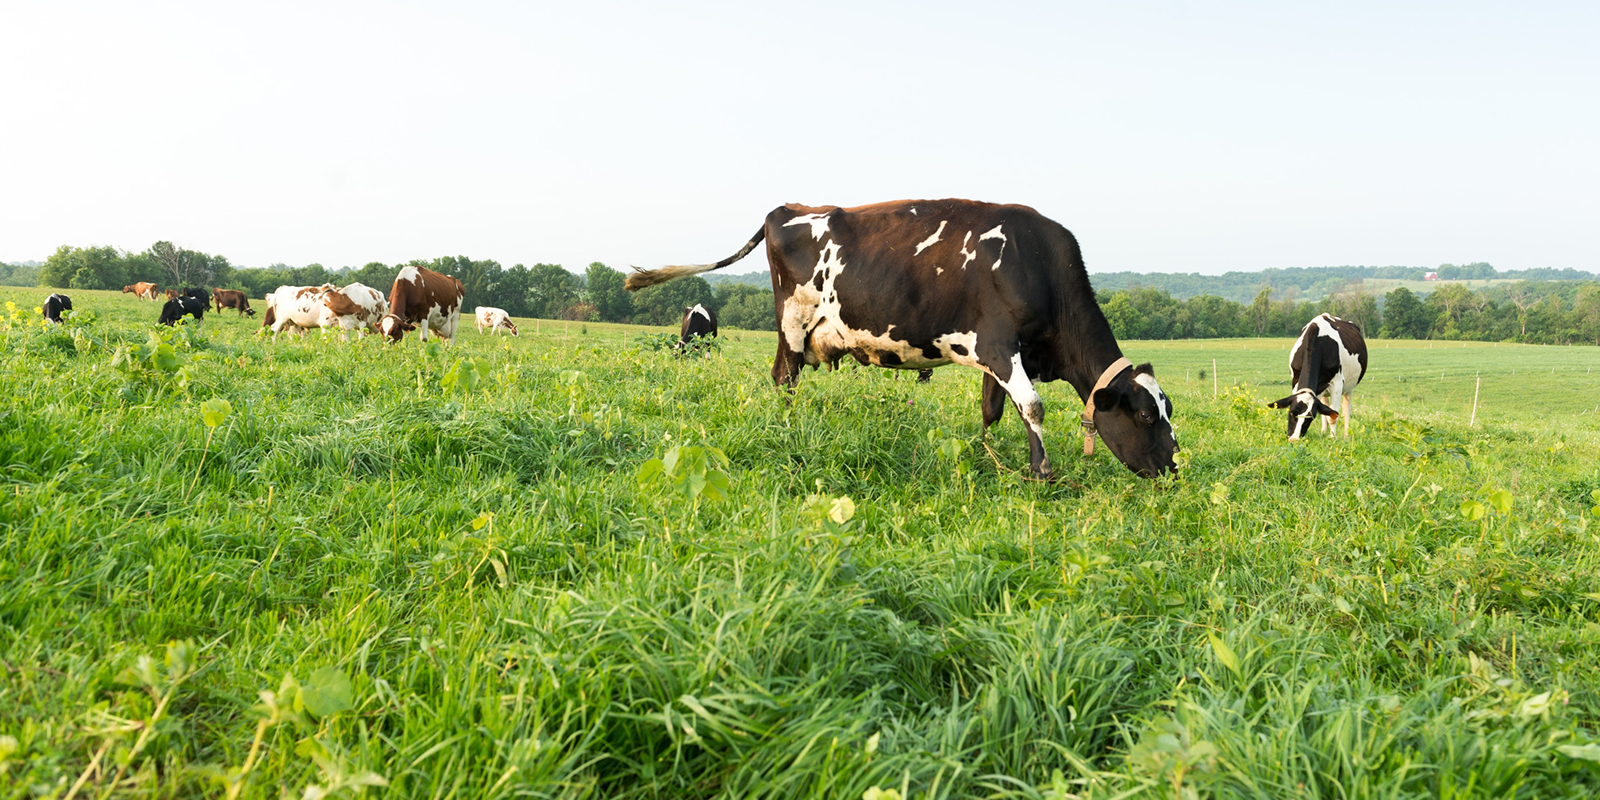 Certified grass-fed organic dairy cows graze lush green pastures on the Gretebecks' Wisconsin farm.